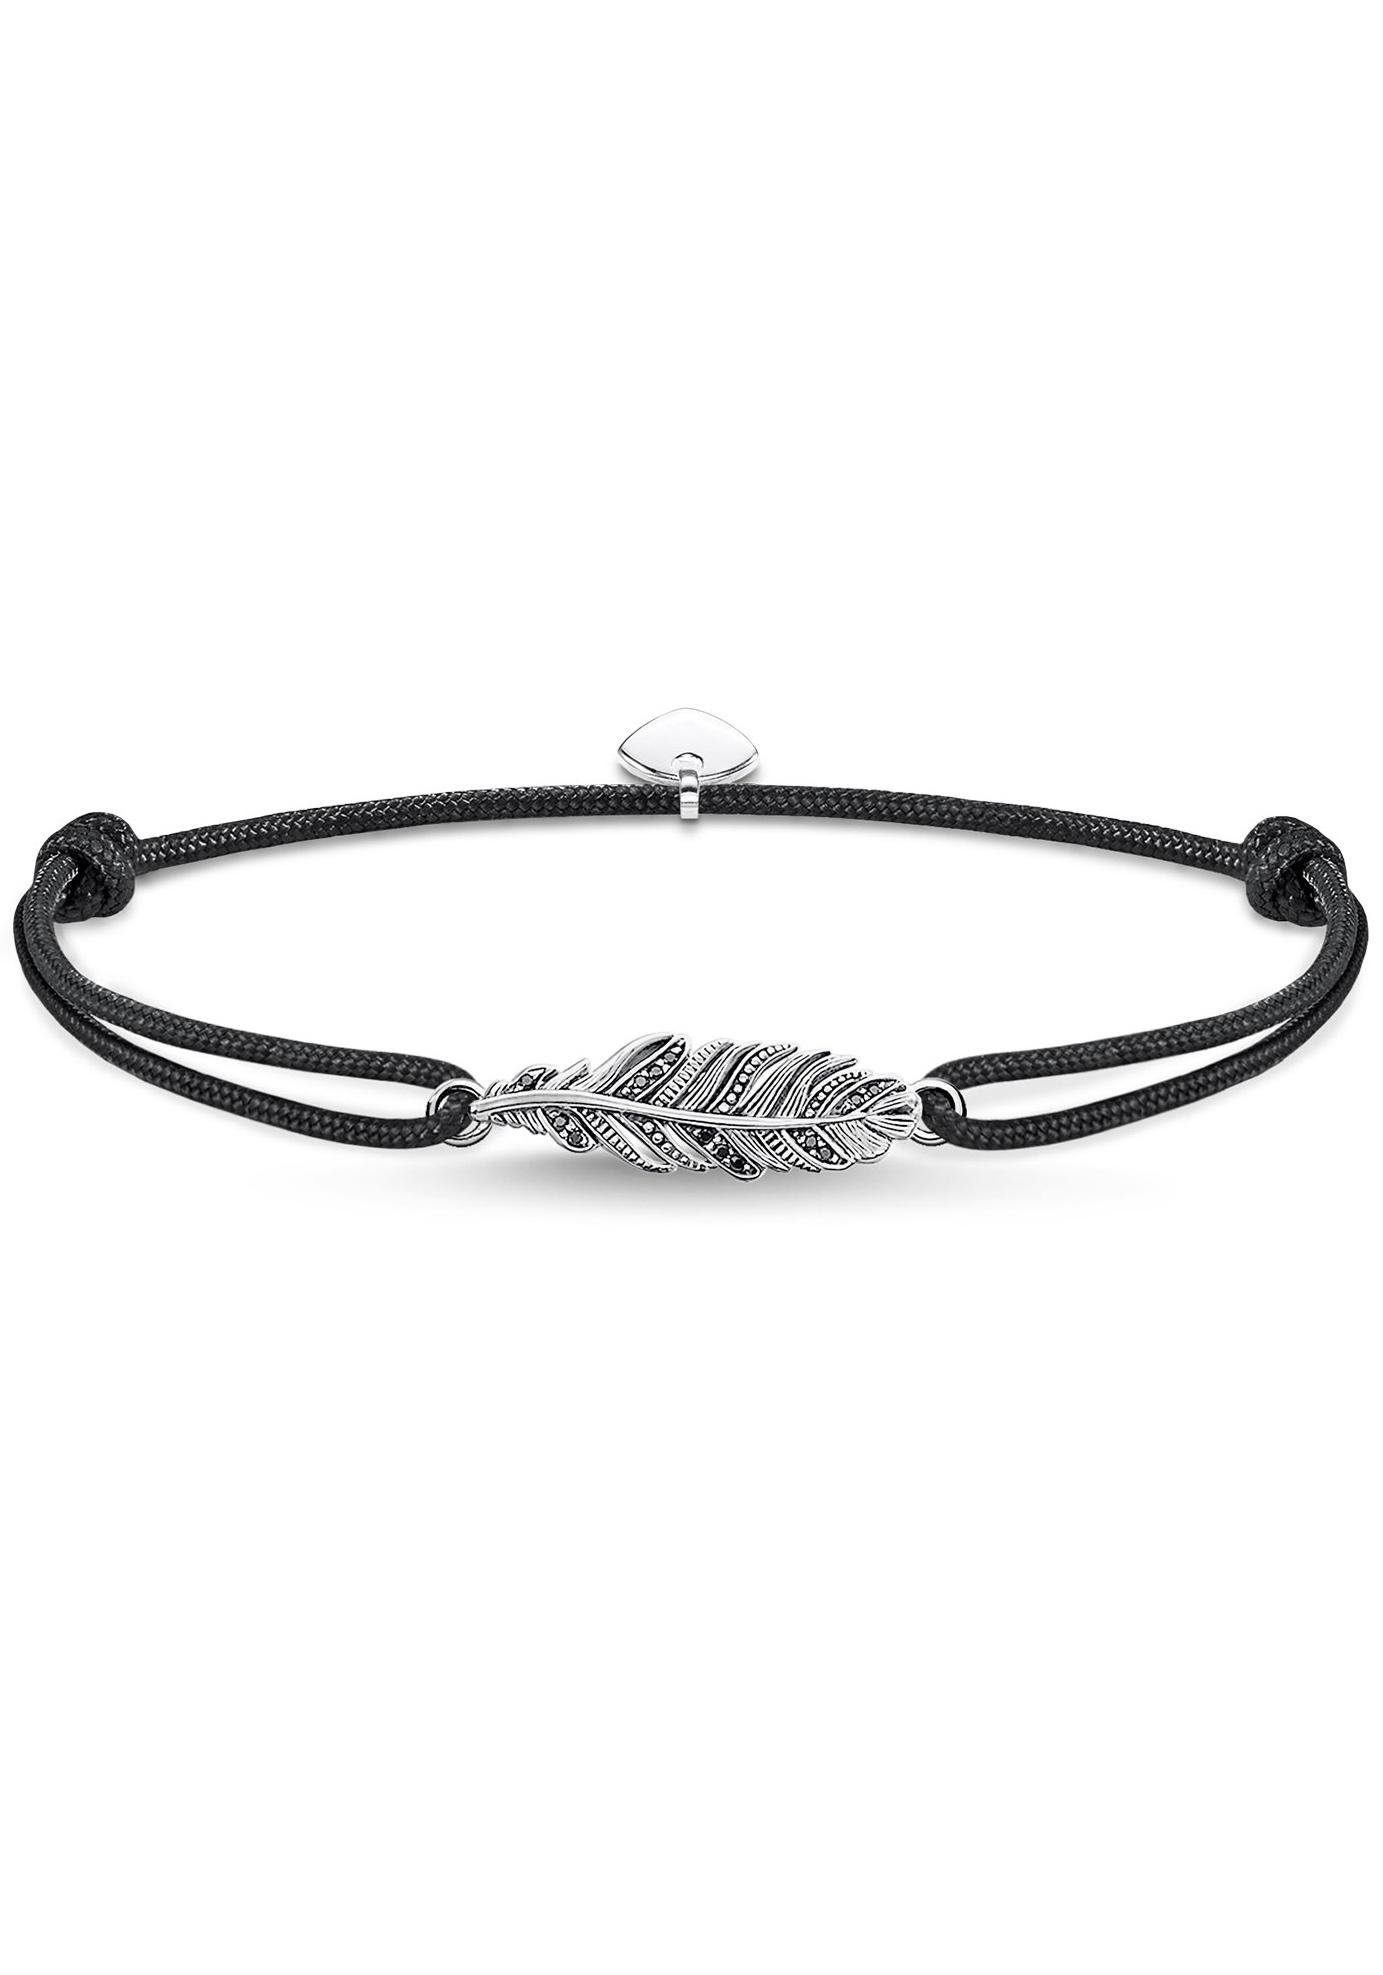 THOMAS SABO Armband »Little Secret Feder, LS063-889-11-L22v« mit Zirkonia